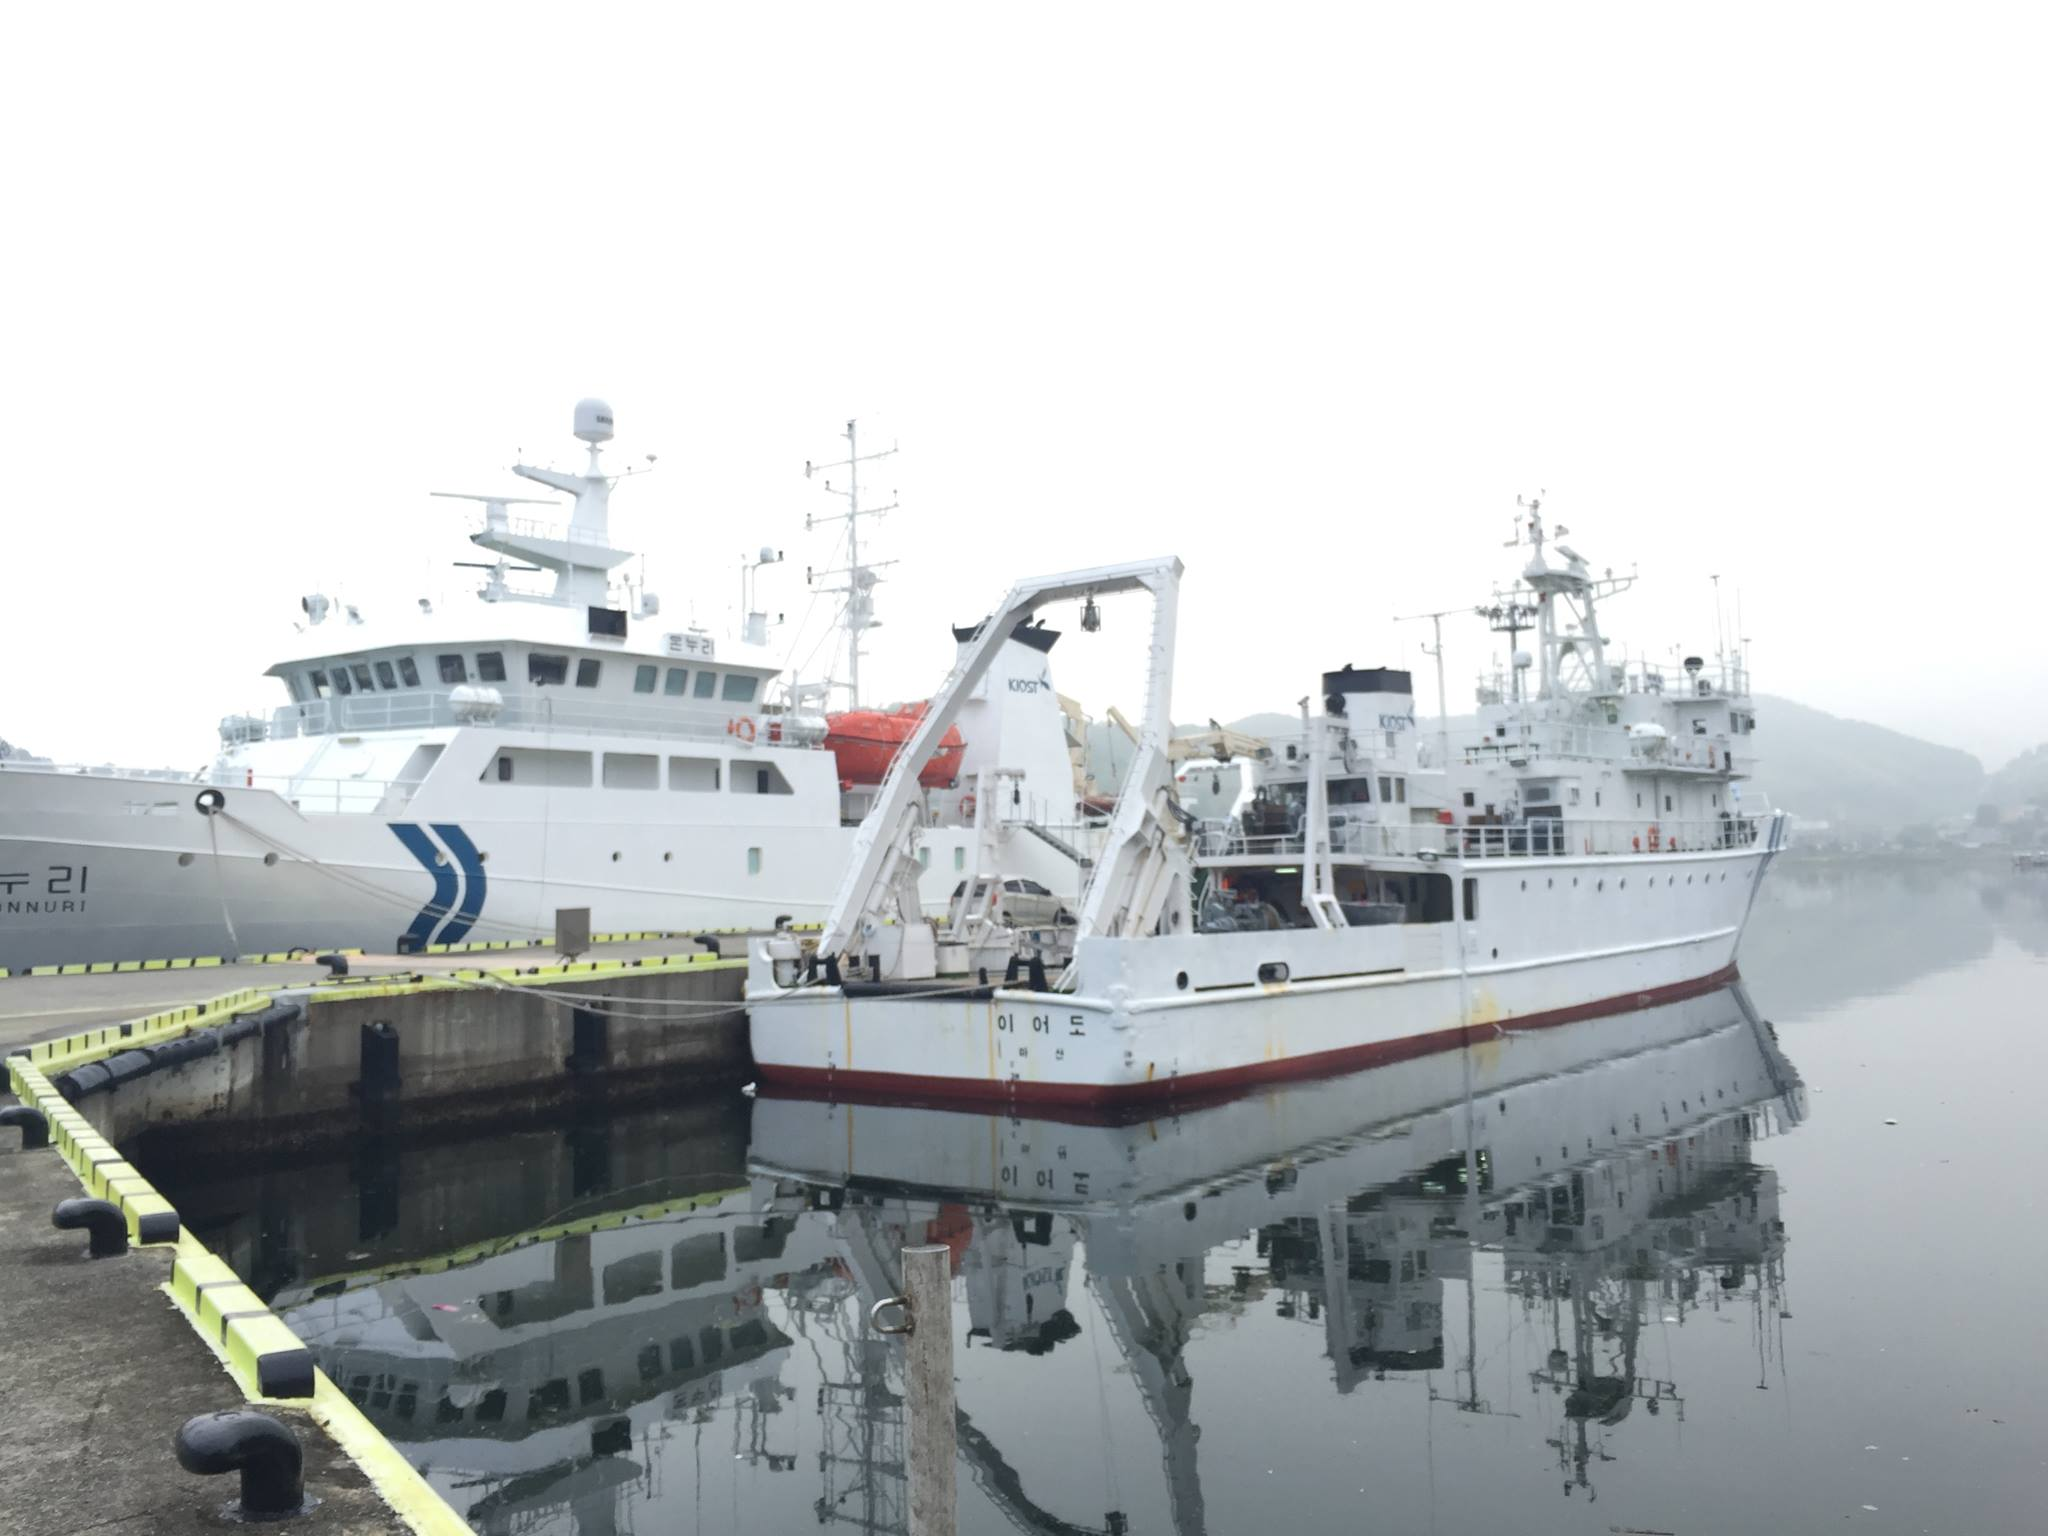 R/V <em>Onnuri</em> and R/V <em>Eardo</em> in port after the KORUS-OC campaign.